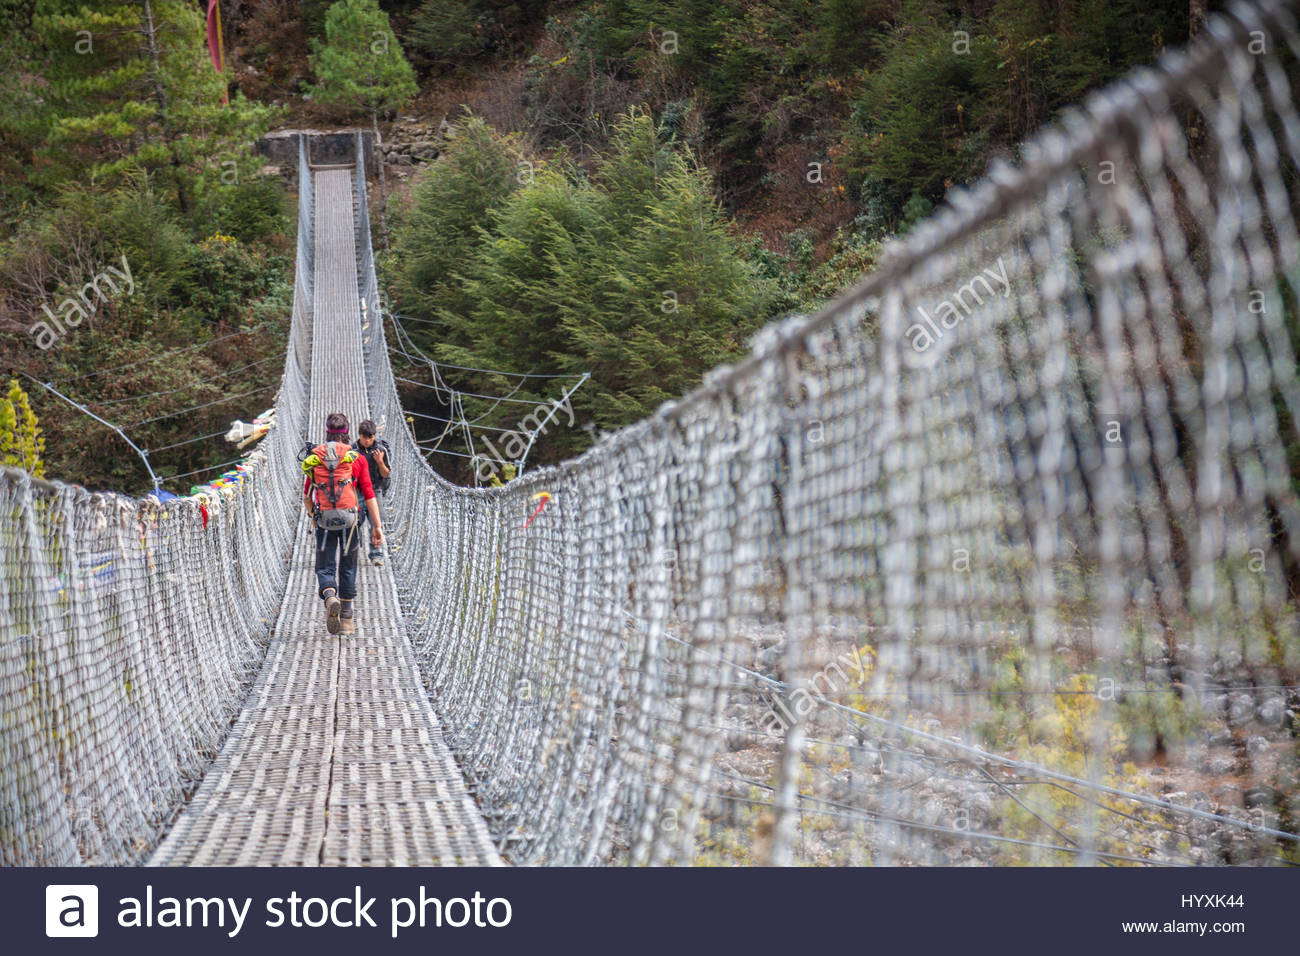 People trekking across a wire mesh footbridge over a river. Stock Photo